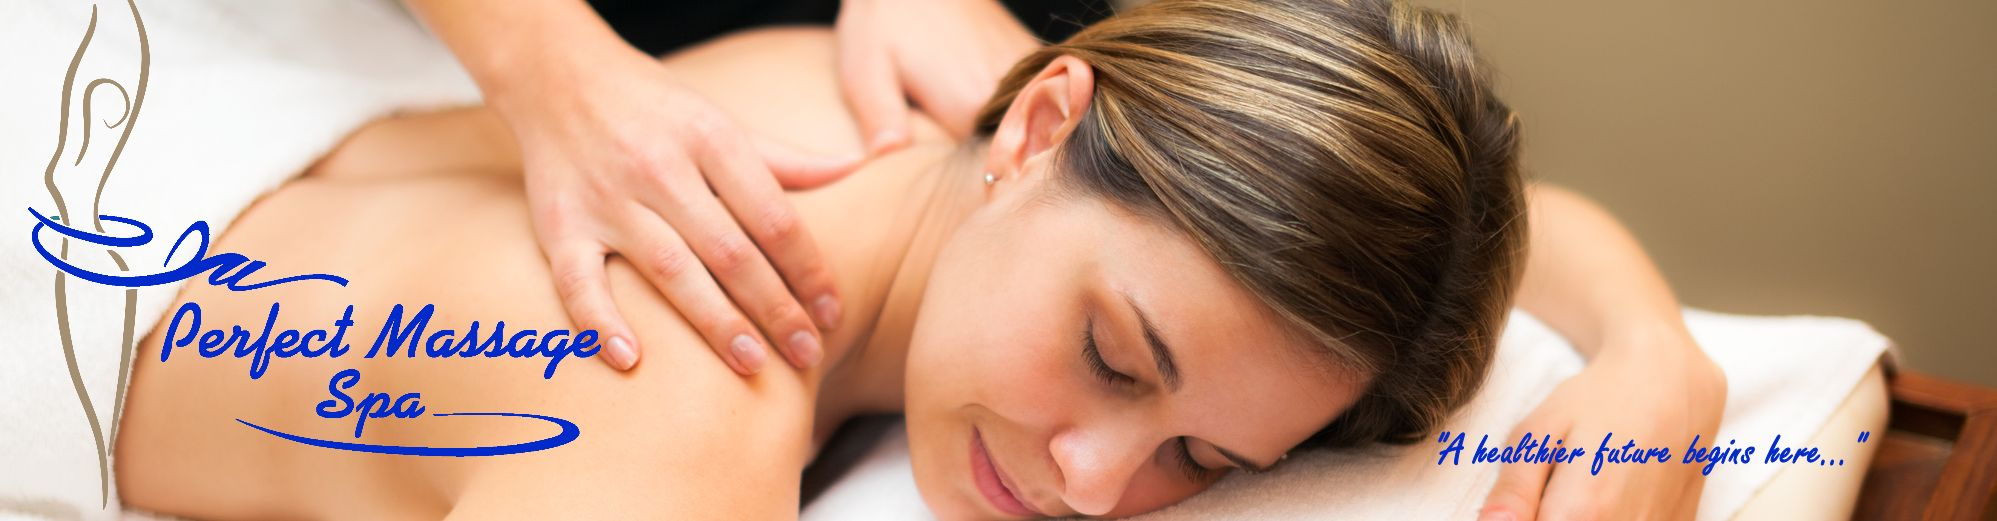 Website Banner - Woman being massaged